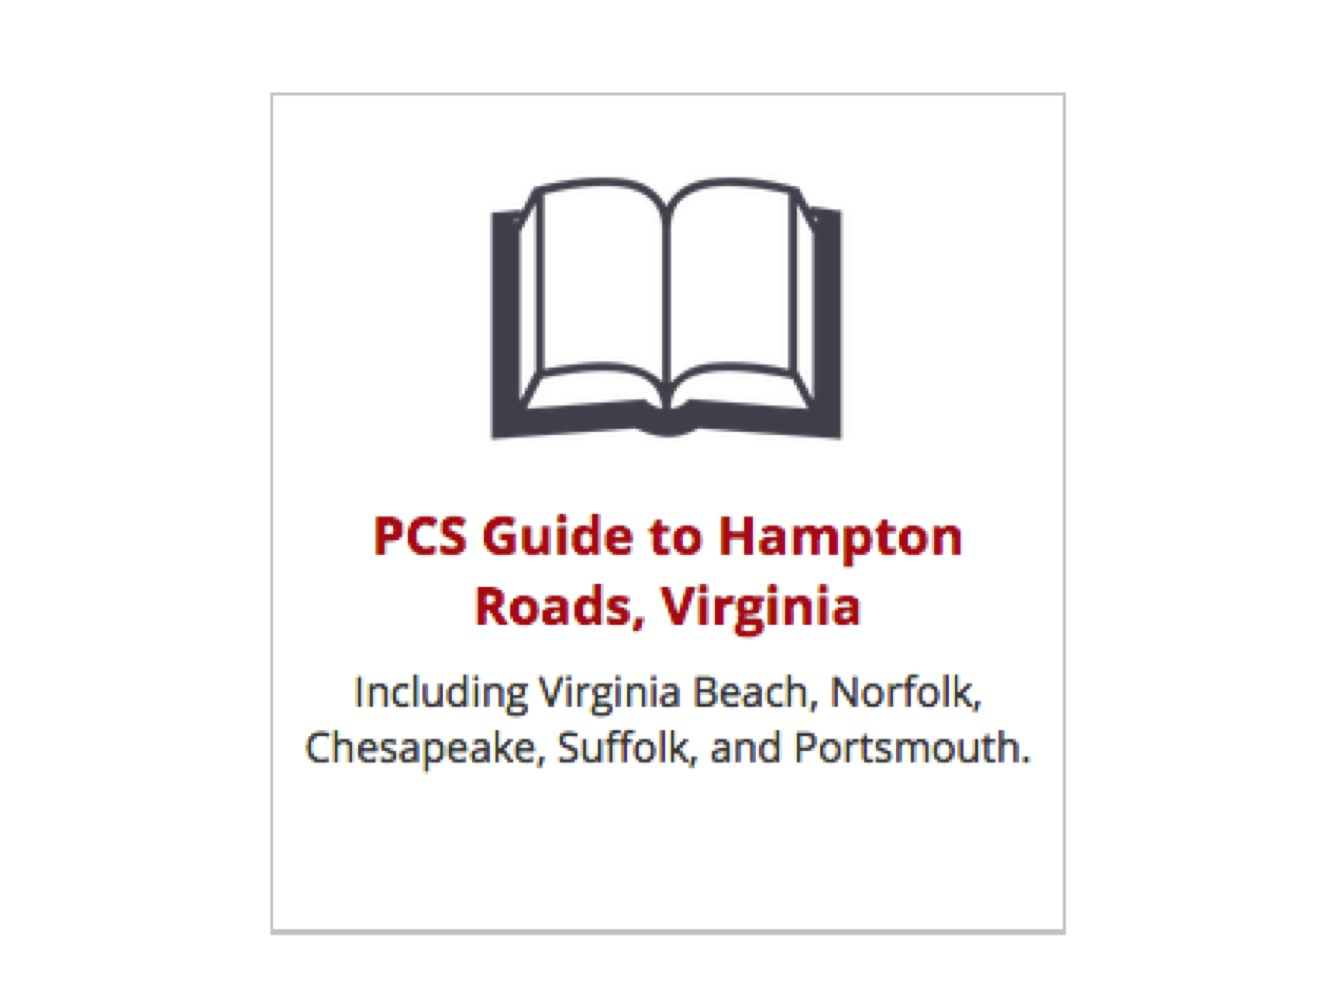 PCS Guide to Norfolk